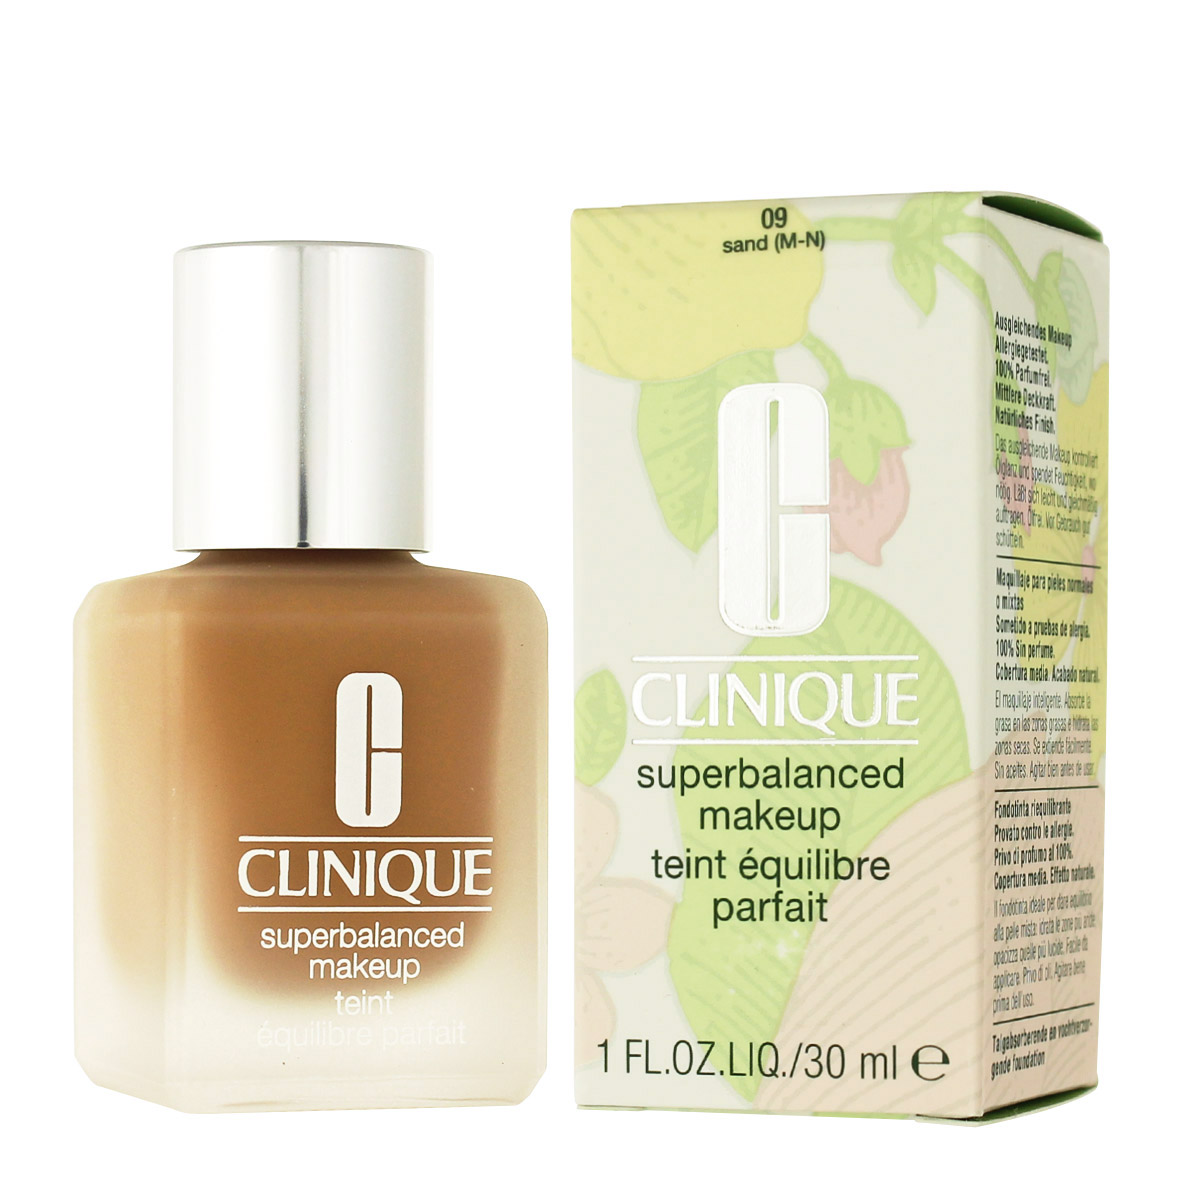 Clinique Superbalanced Makeup (09 Sand M-N) 30 ml